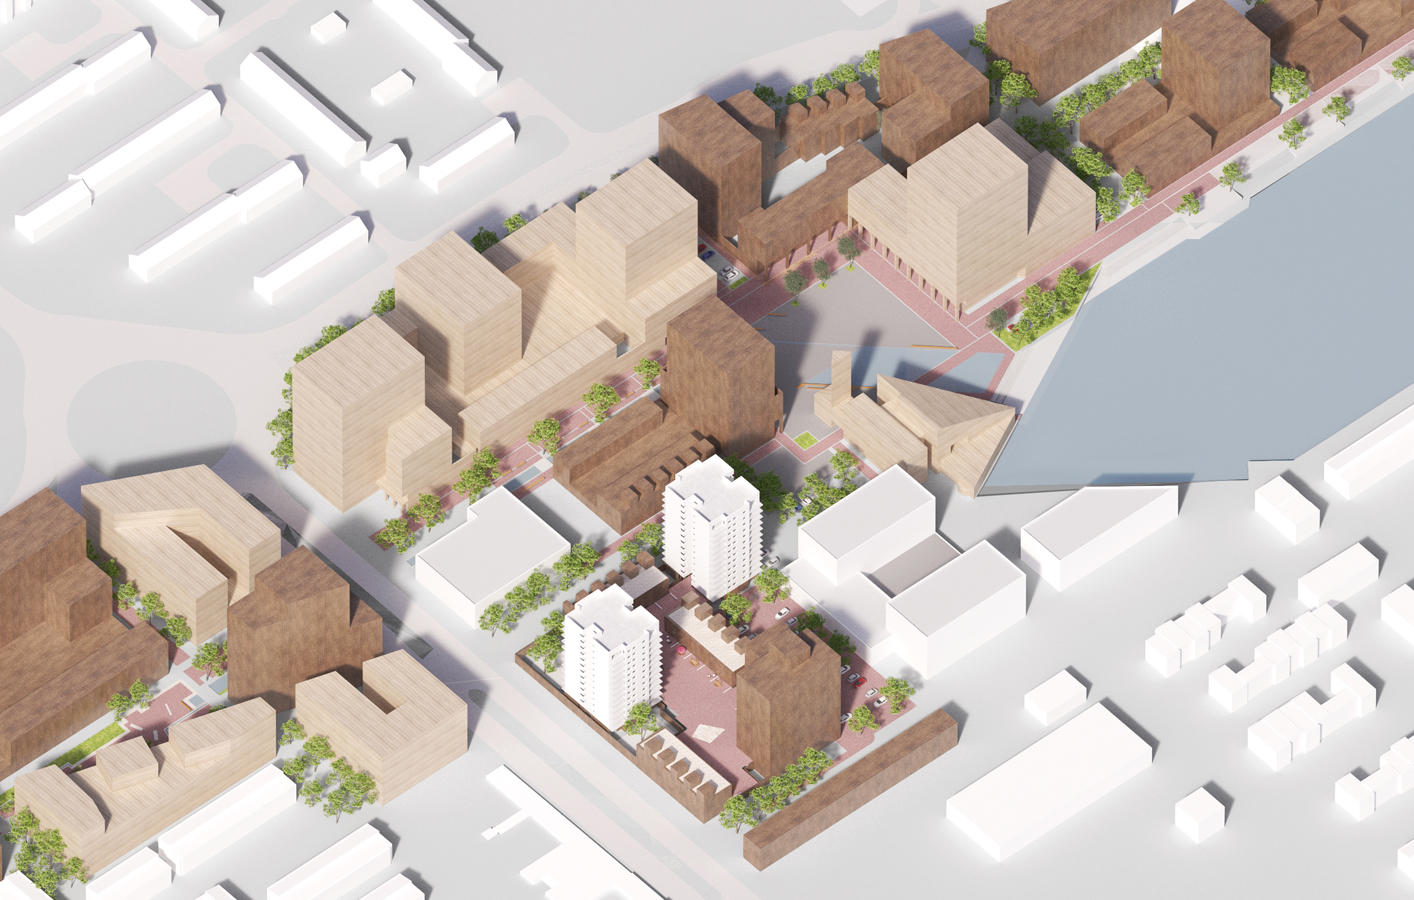 Bird's eye view of the proposed massing for Southmere Village